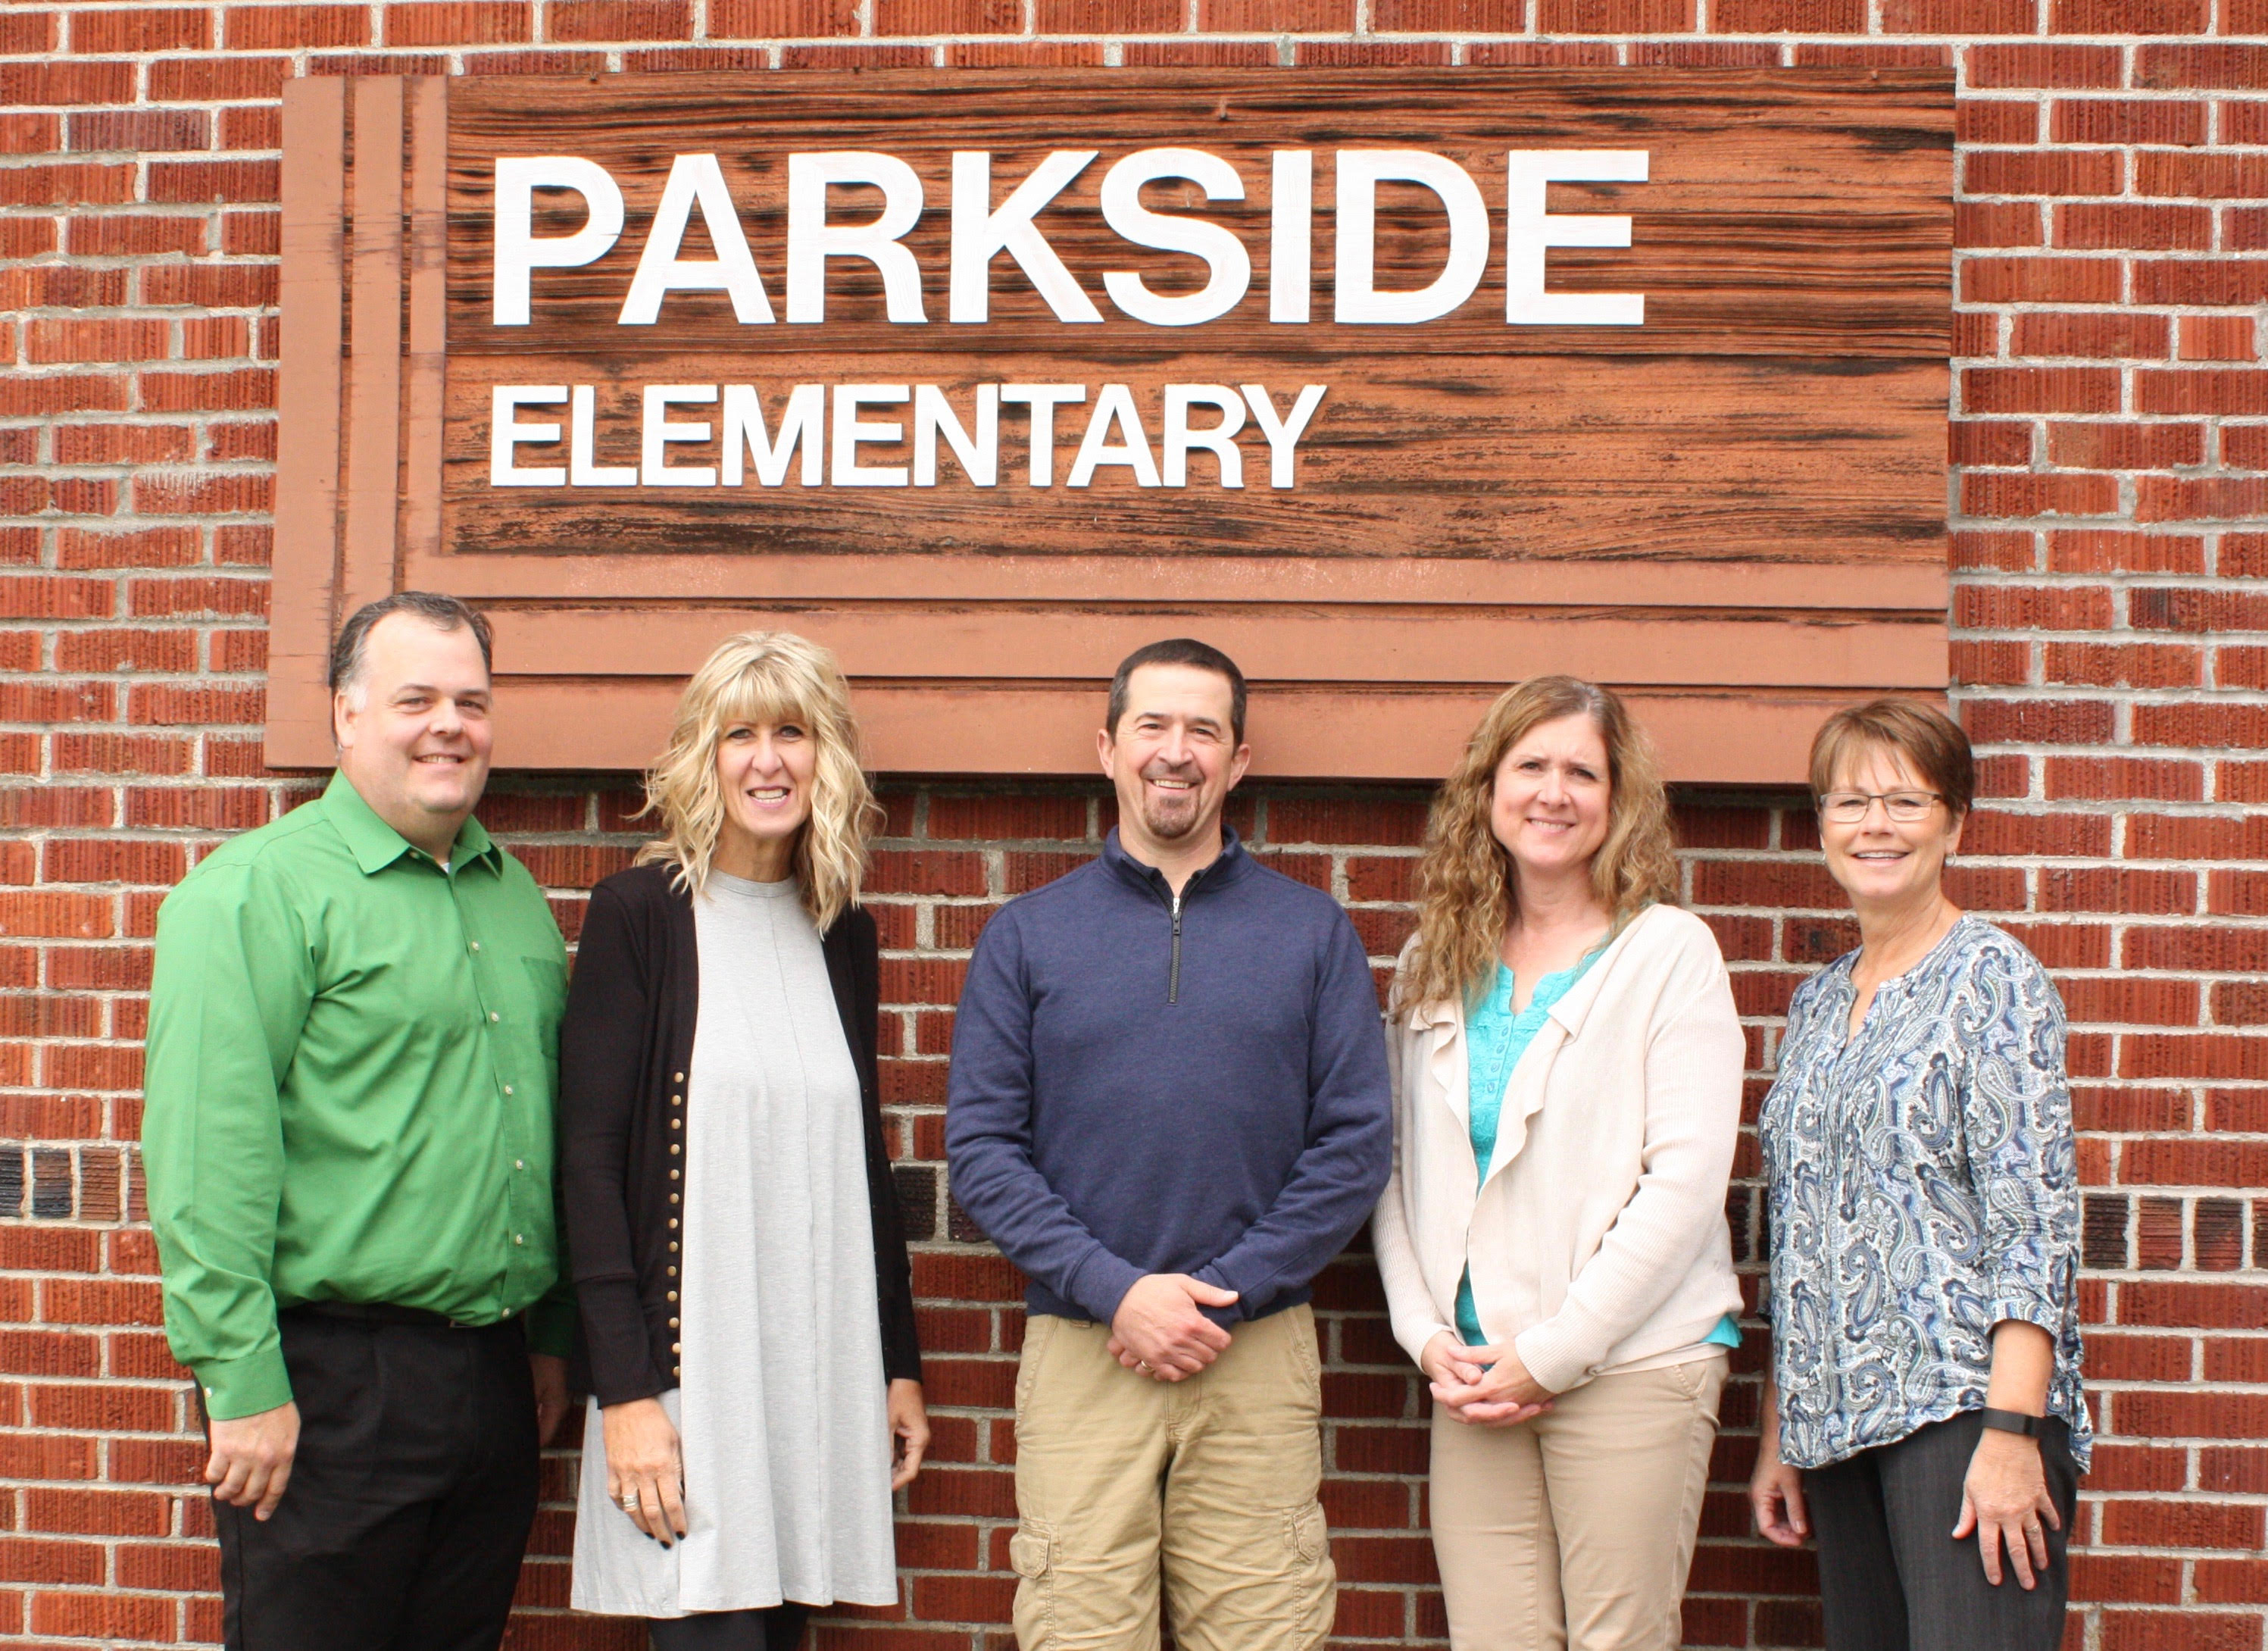 Parkside Elementary Office Staff